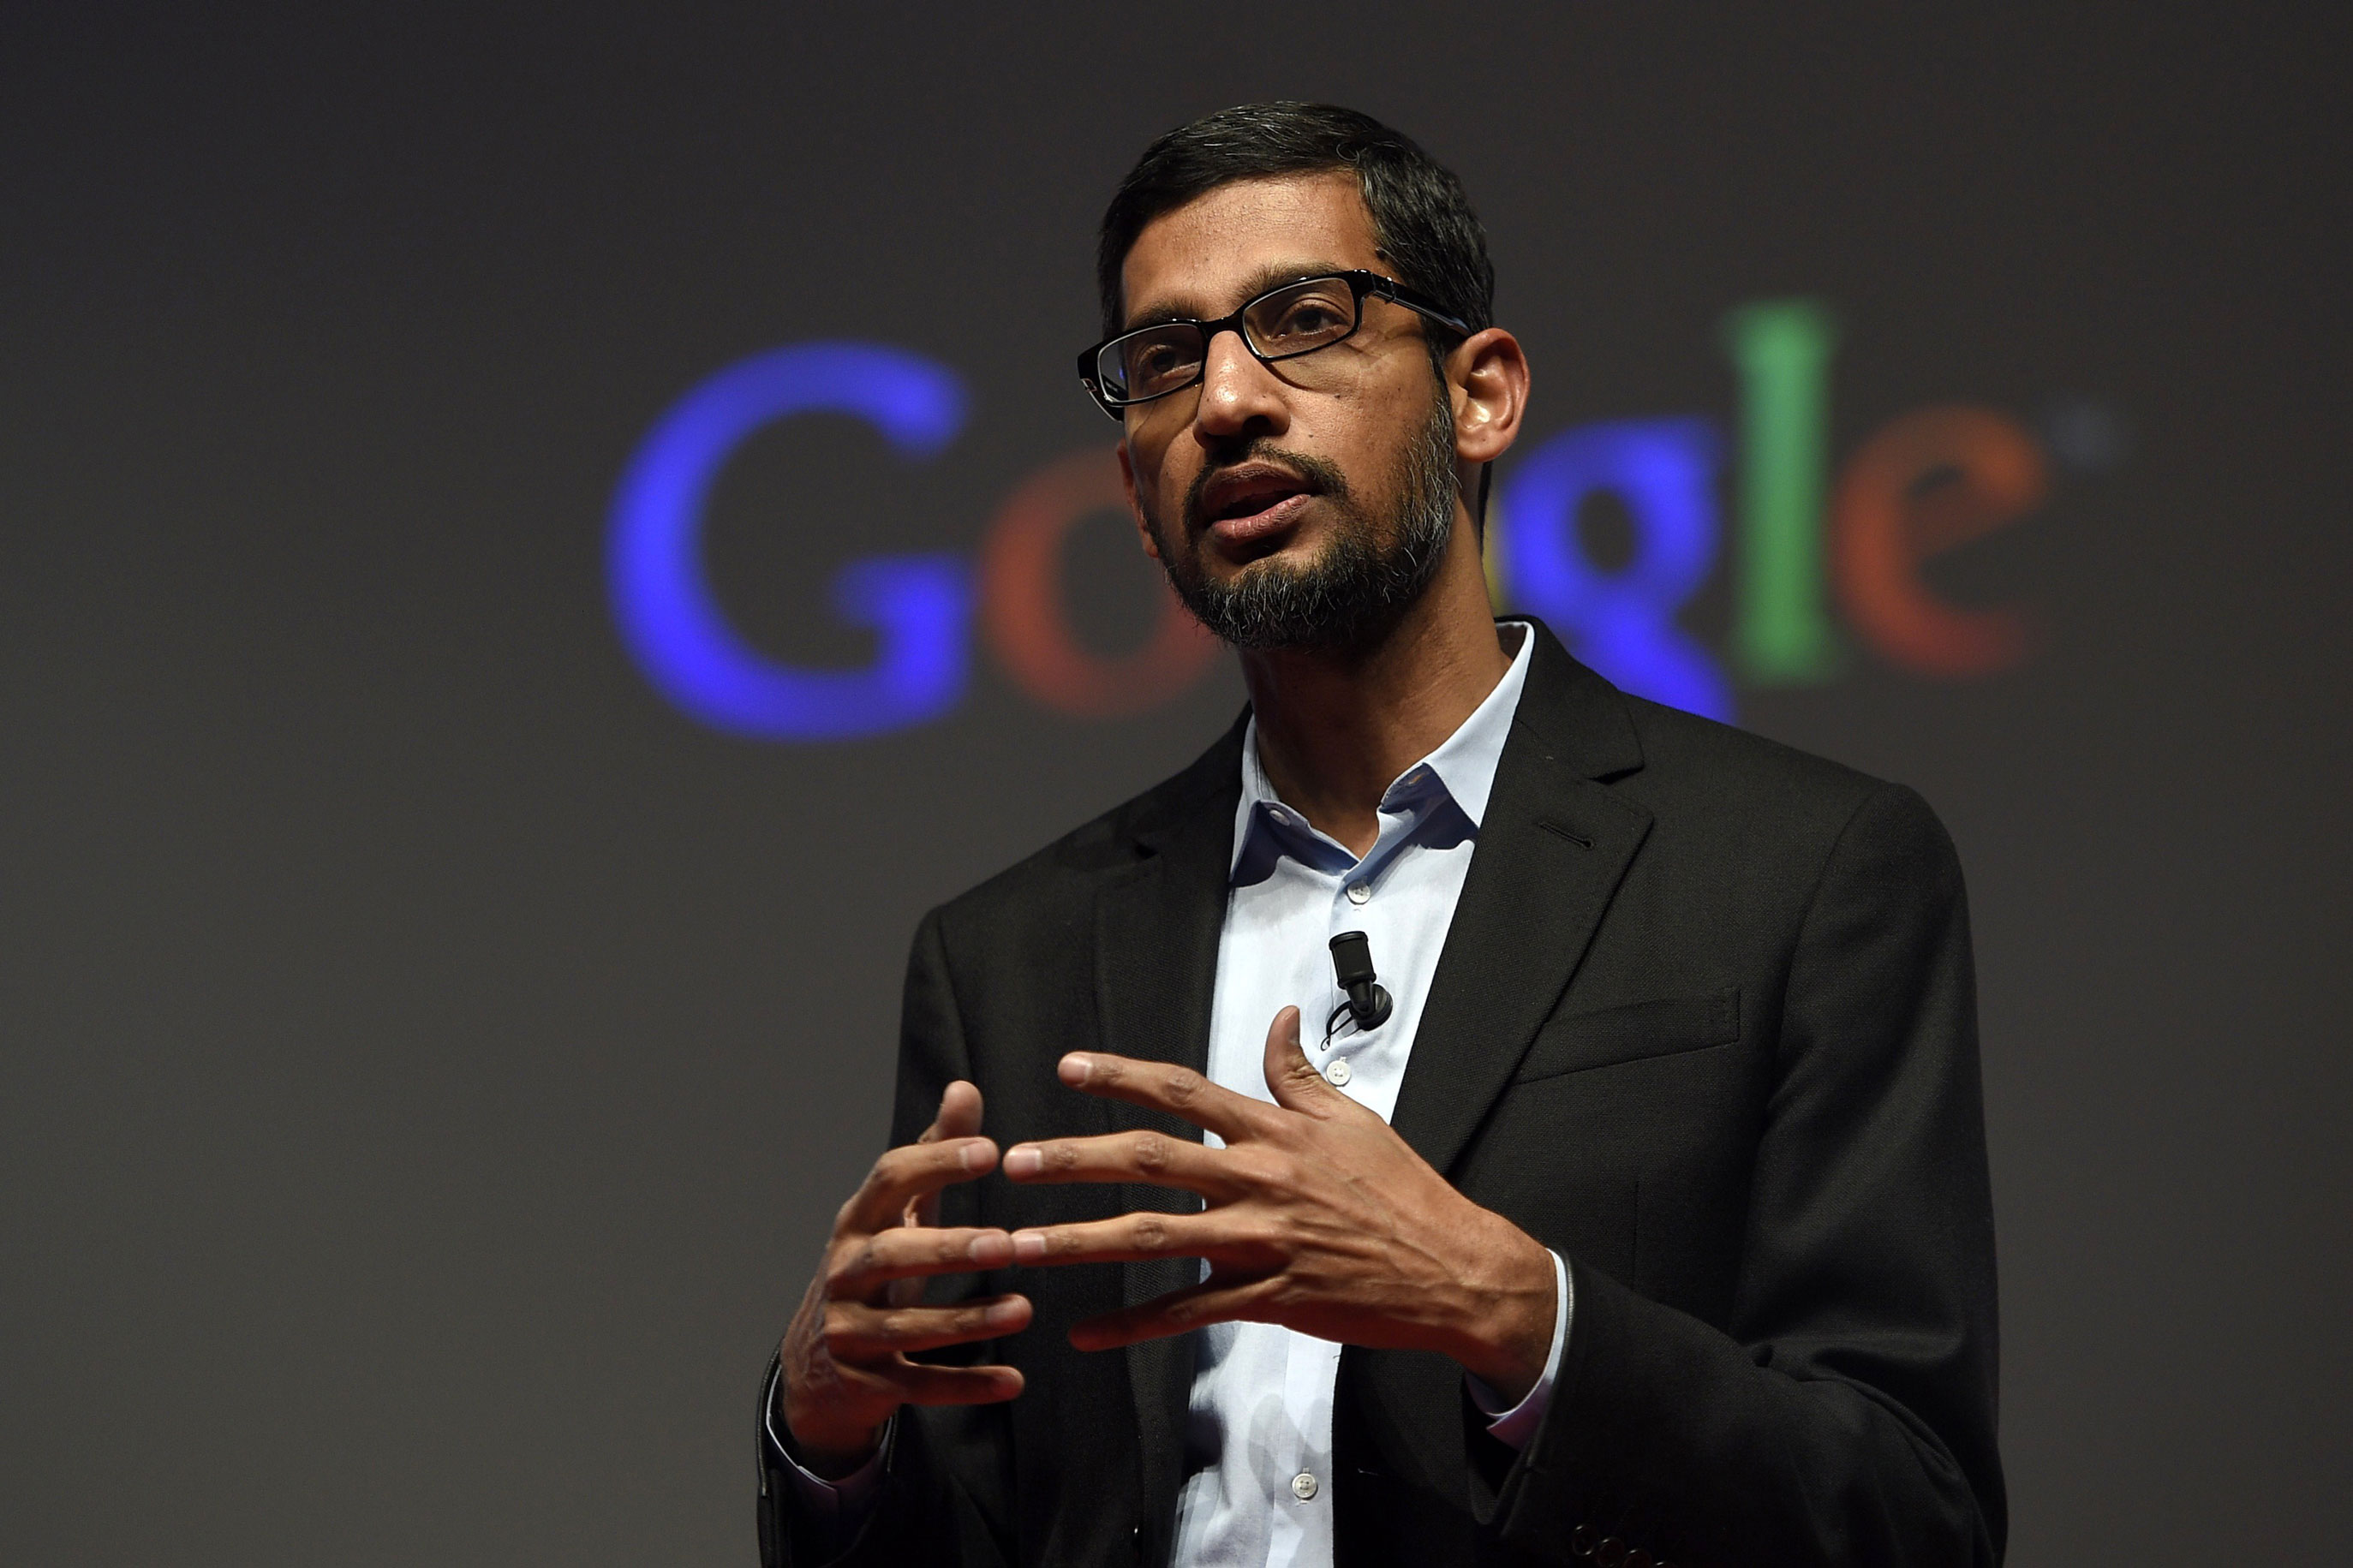 Google commits $1 billion in grants to train U.S. workers for high-tech jobs